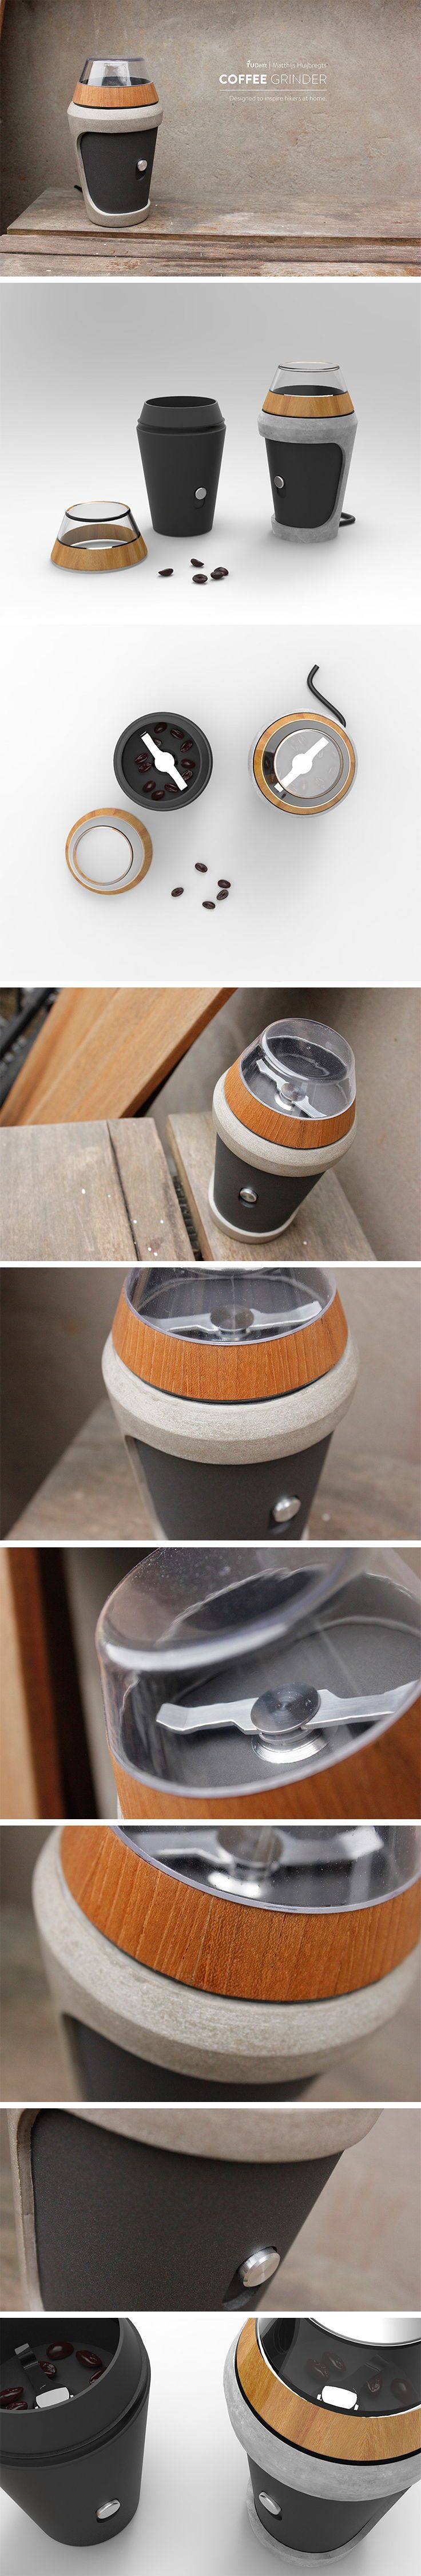 Designer Matthijs Huijbregts focused on a coffee grinder that was aimed at hikers. He incorporated familiar fragments in the form of material and shape that would consciously or subconsciously appeal to this unique subgroup of athletes. First, its shape looks to nature for a form that is at once modern and organic. Its exterior material composition includes wood and stone which also reminds one of familiar textures and matter they might see on a hike in the woods.